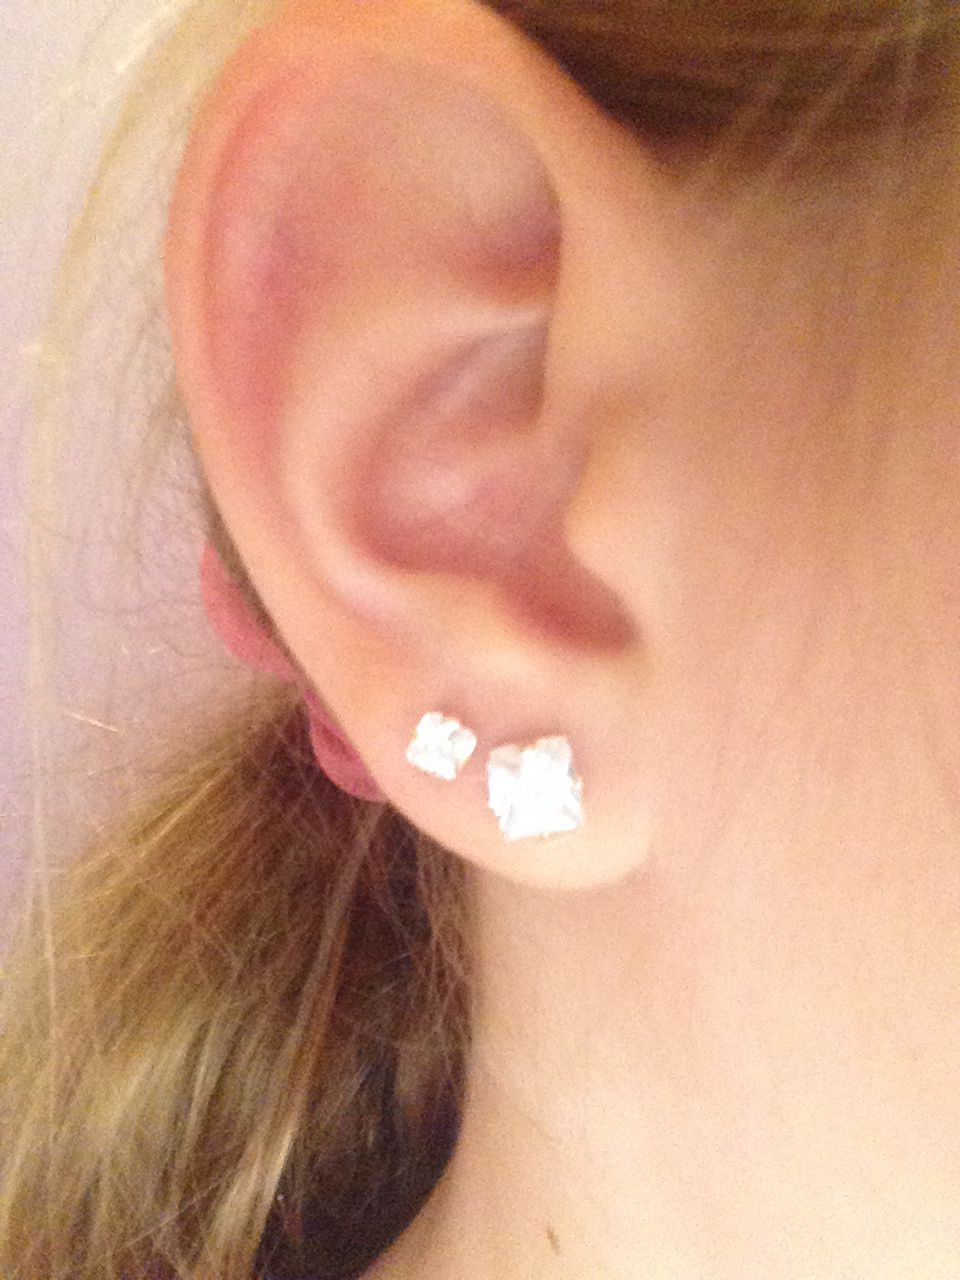 Double nose piercing  Second percing  Percing  Pinterest  Piercing and Piercings